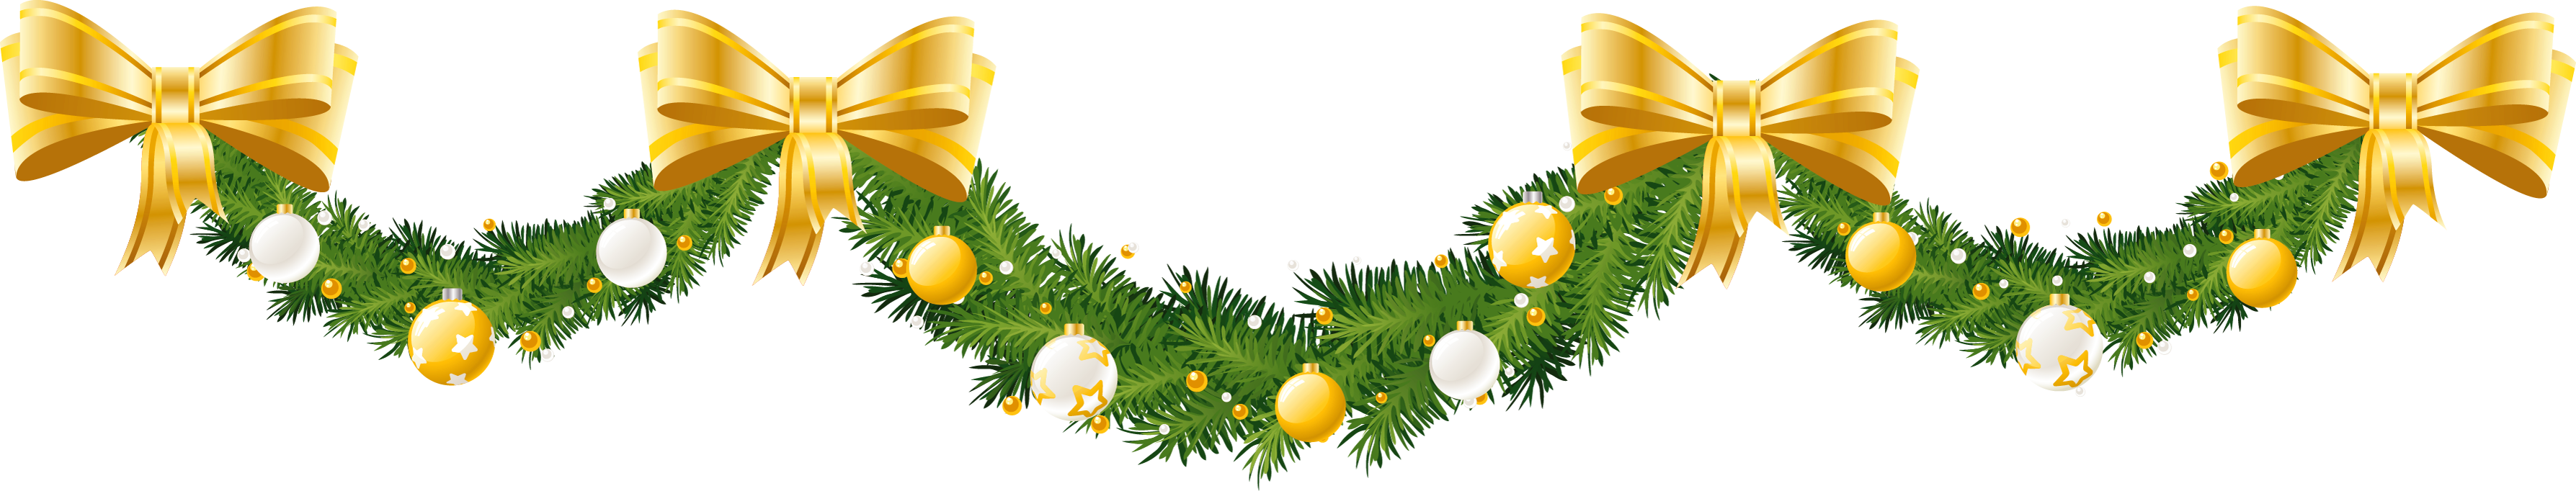 10 Christmas Garland Clip Art Free Cliparts That You Can Download To